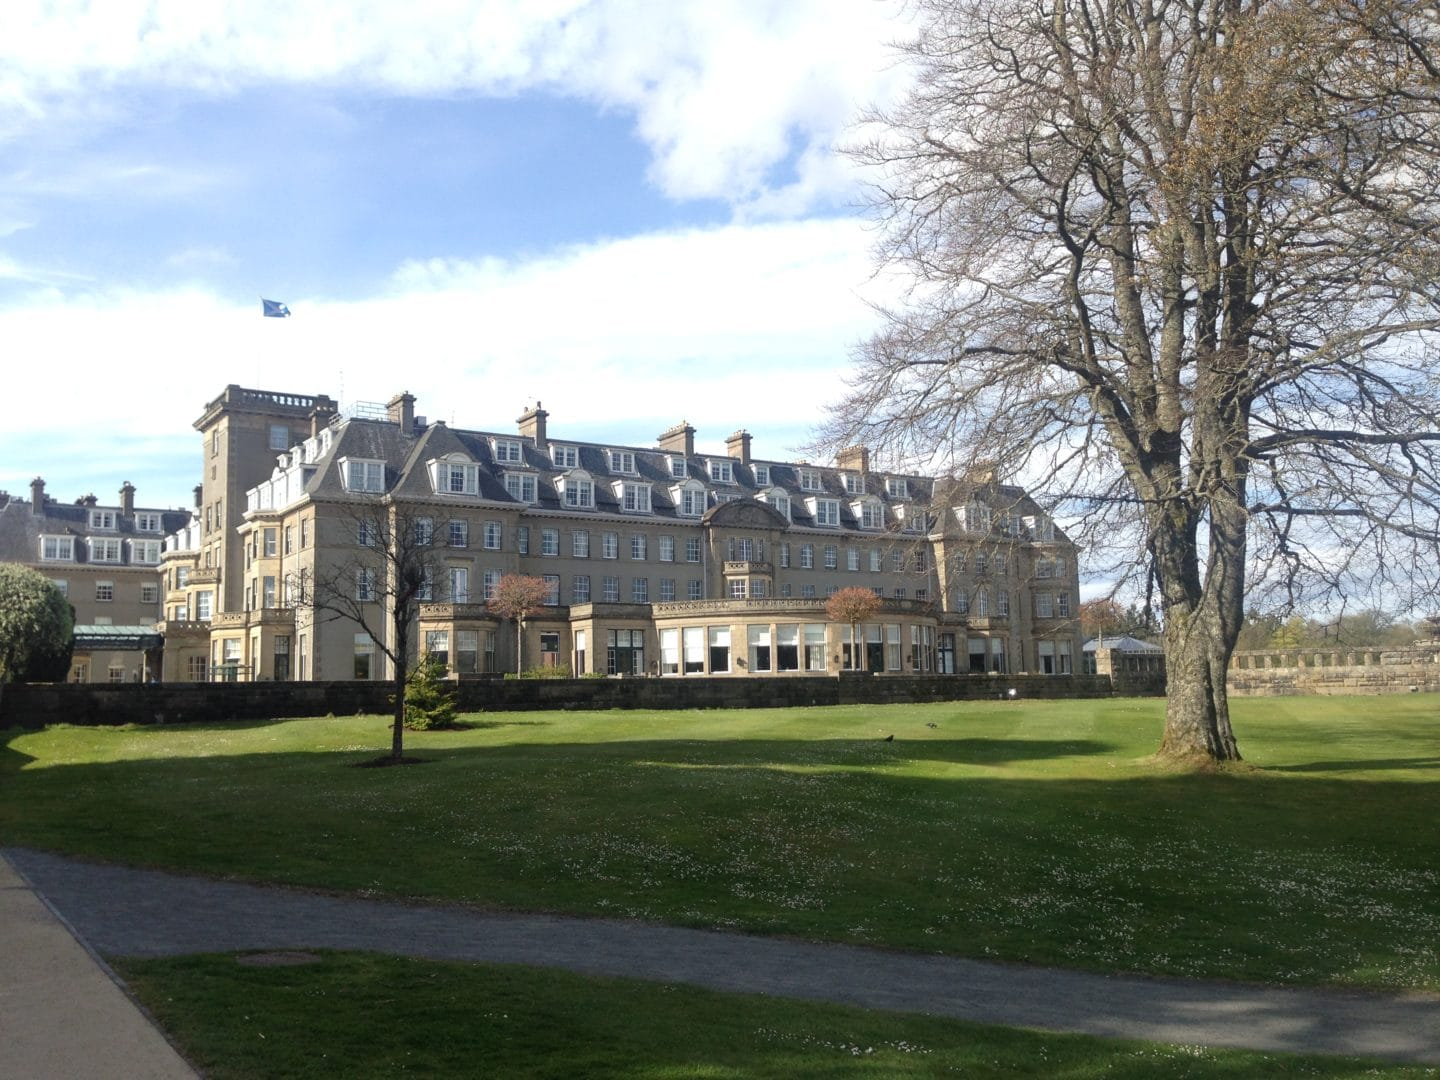 Make Events | Coporate Events Company North West | Event Image The exterior of the Gleneagles Hotel